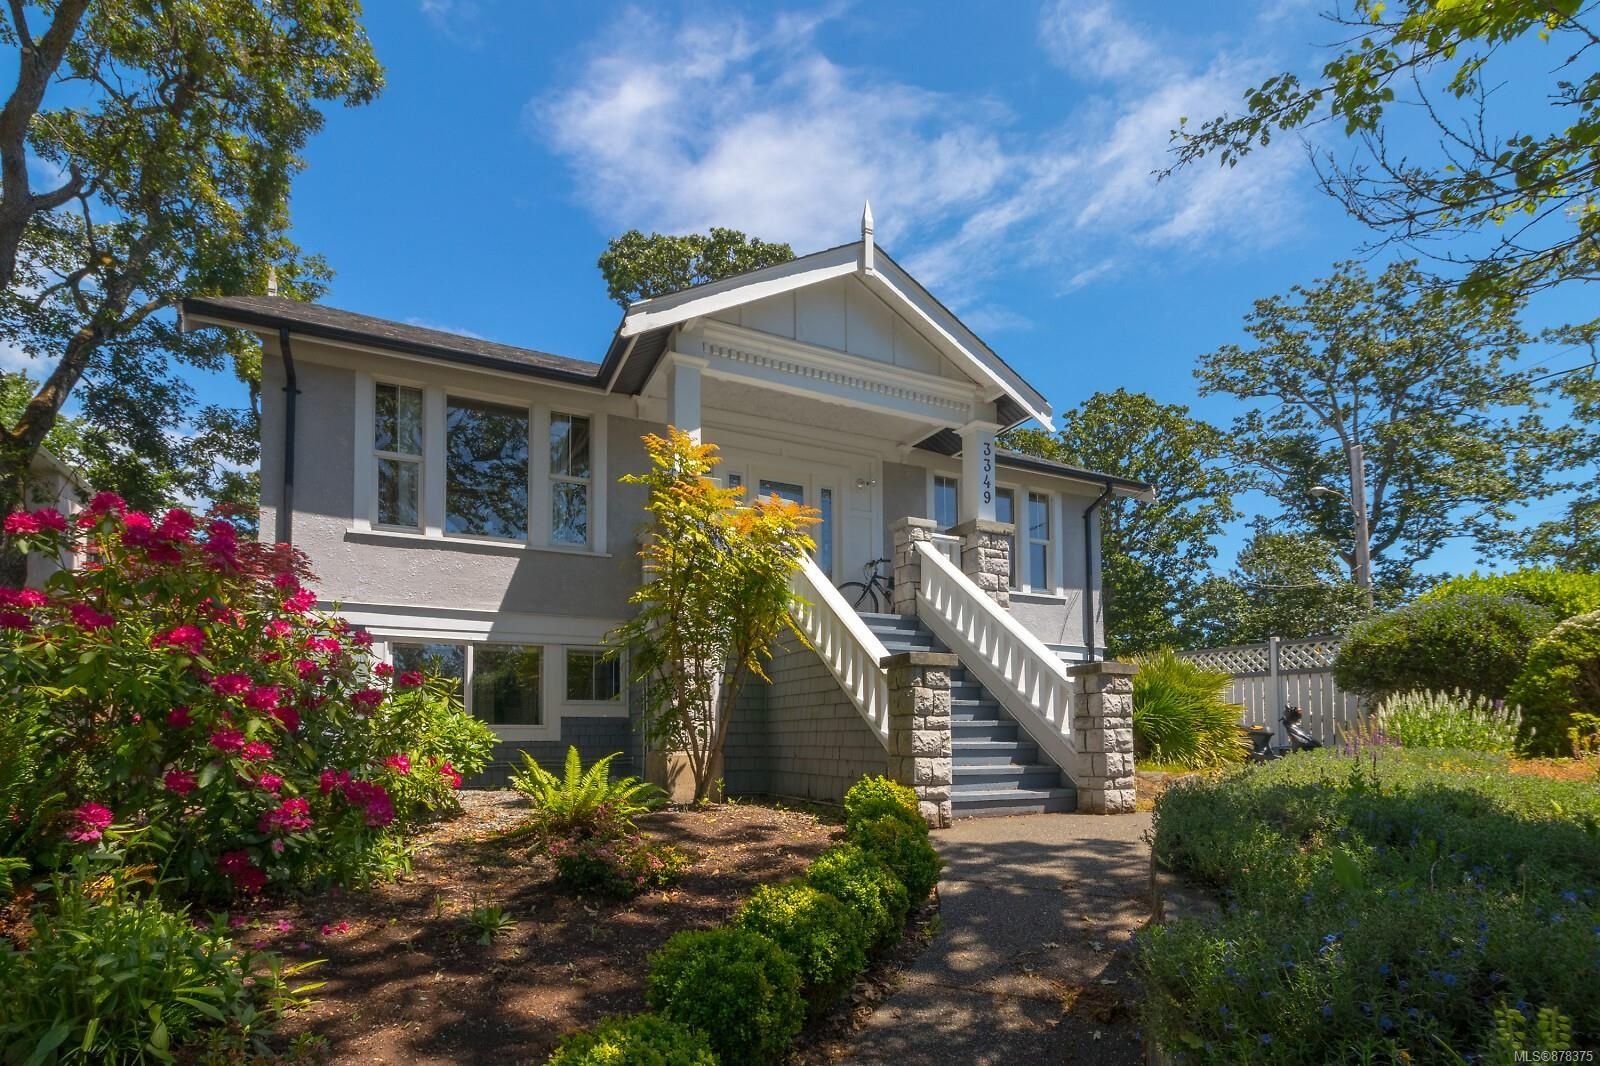 Main Photo: 3349 Cook St in : SE Maplewood House for sale (Saanich East)  : MLS®# 878375